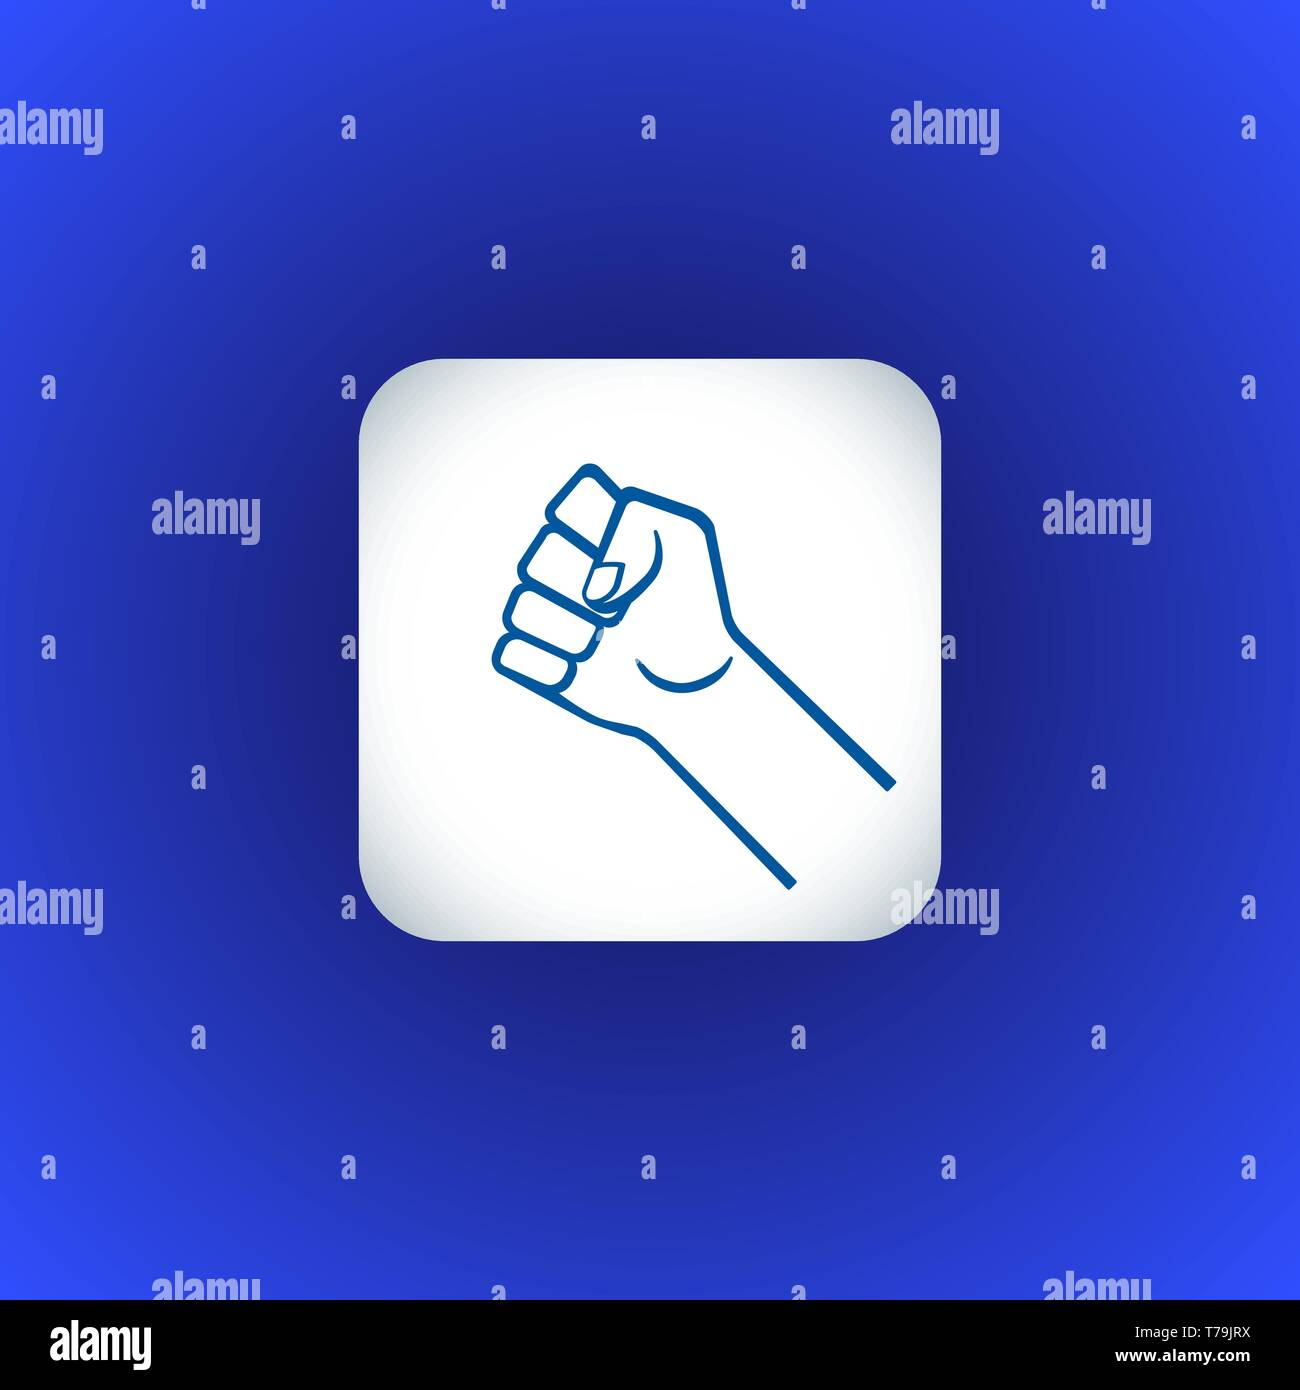 vector symbolic raised clenched power fist male hand protest concept sign illustration light icon poster design isolated on blue background - Stock Vector